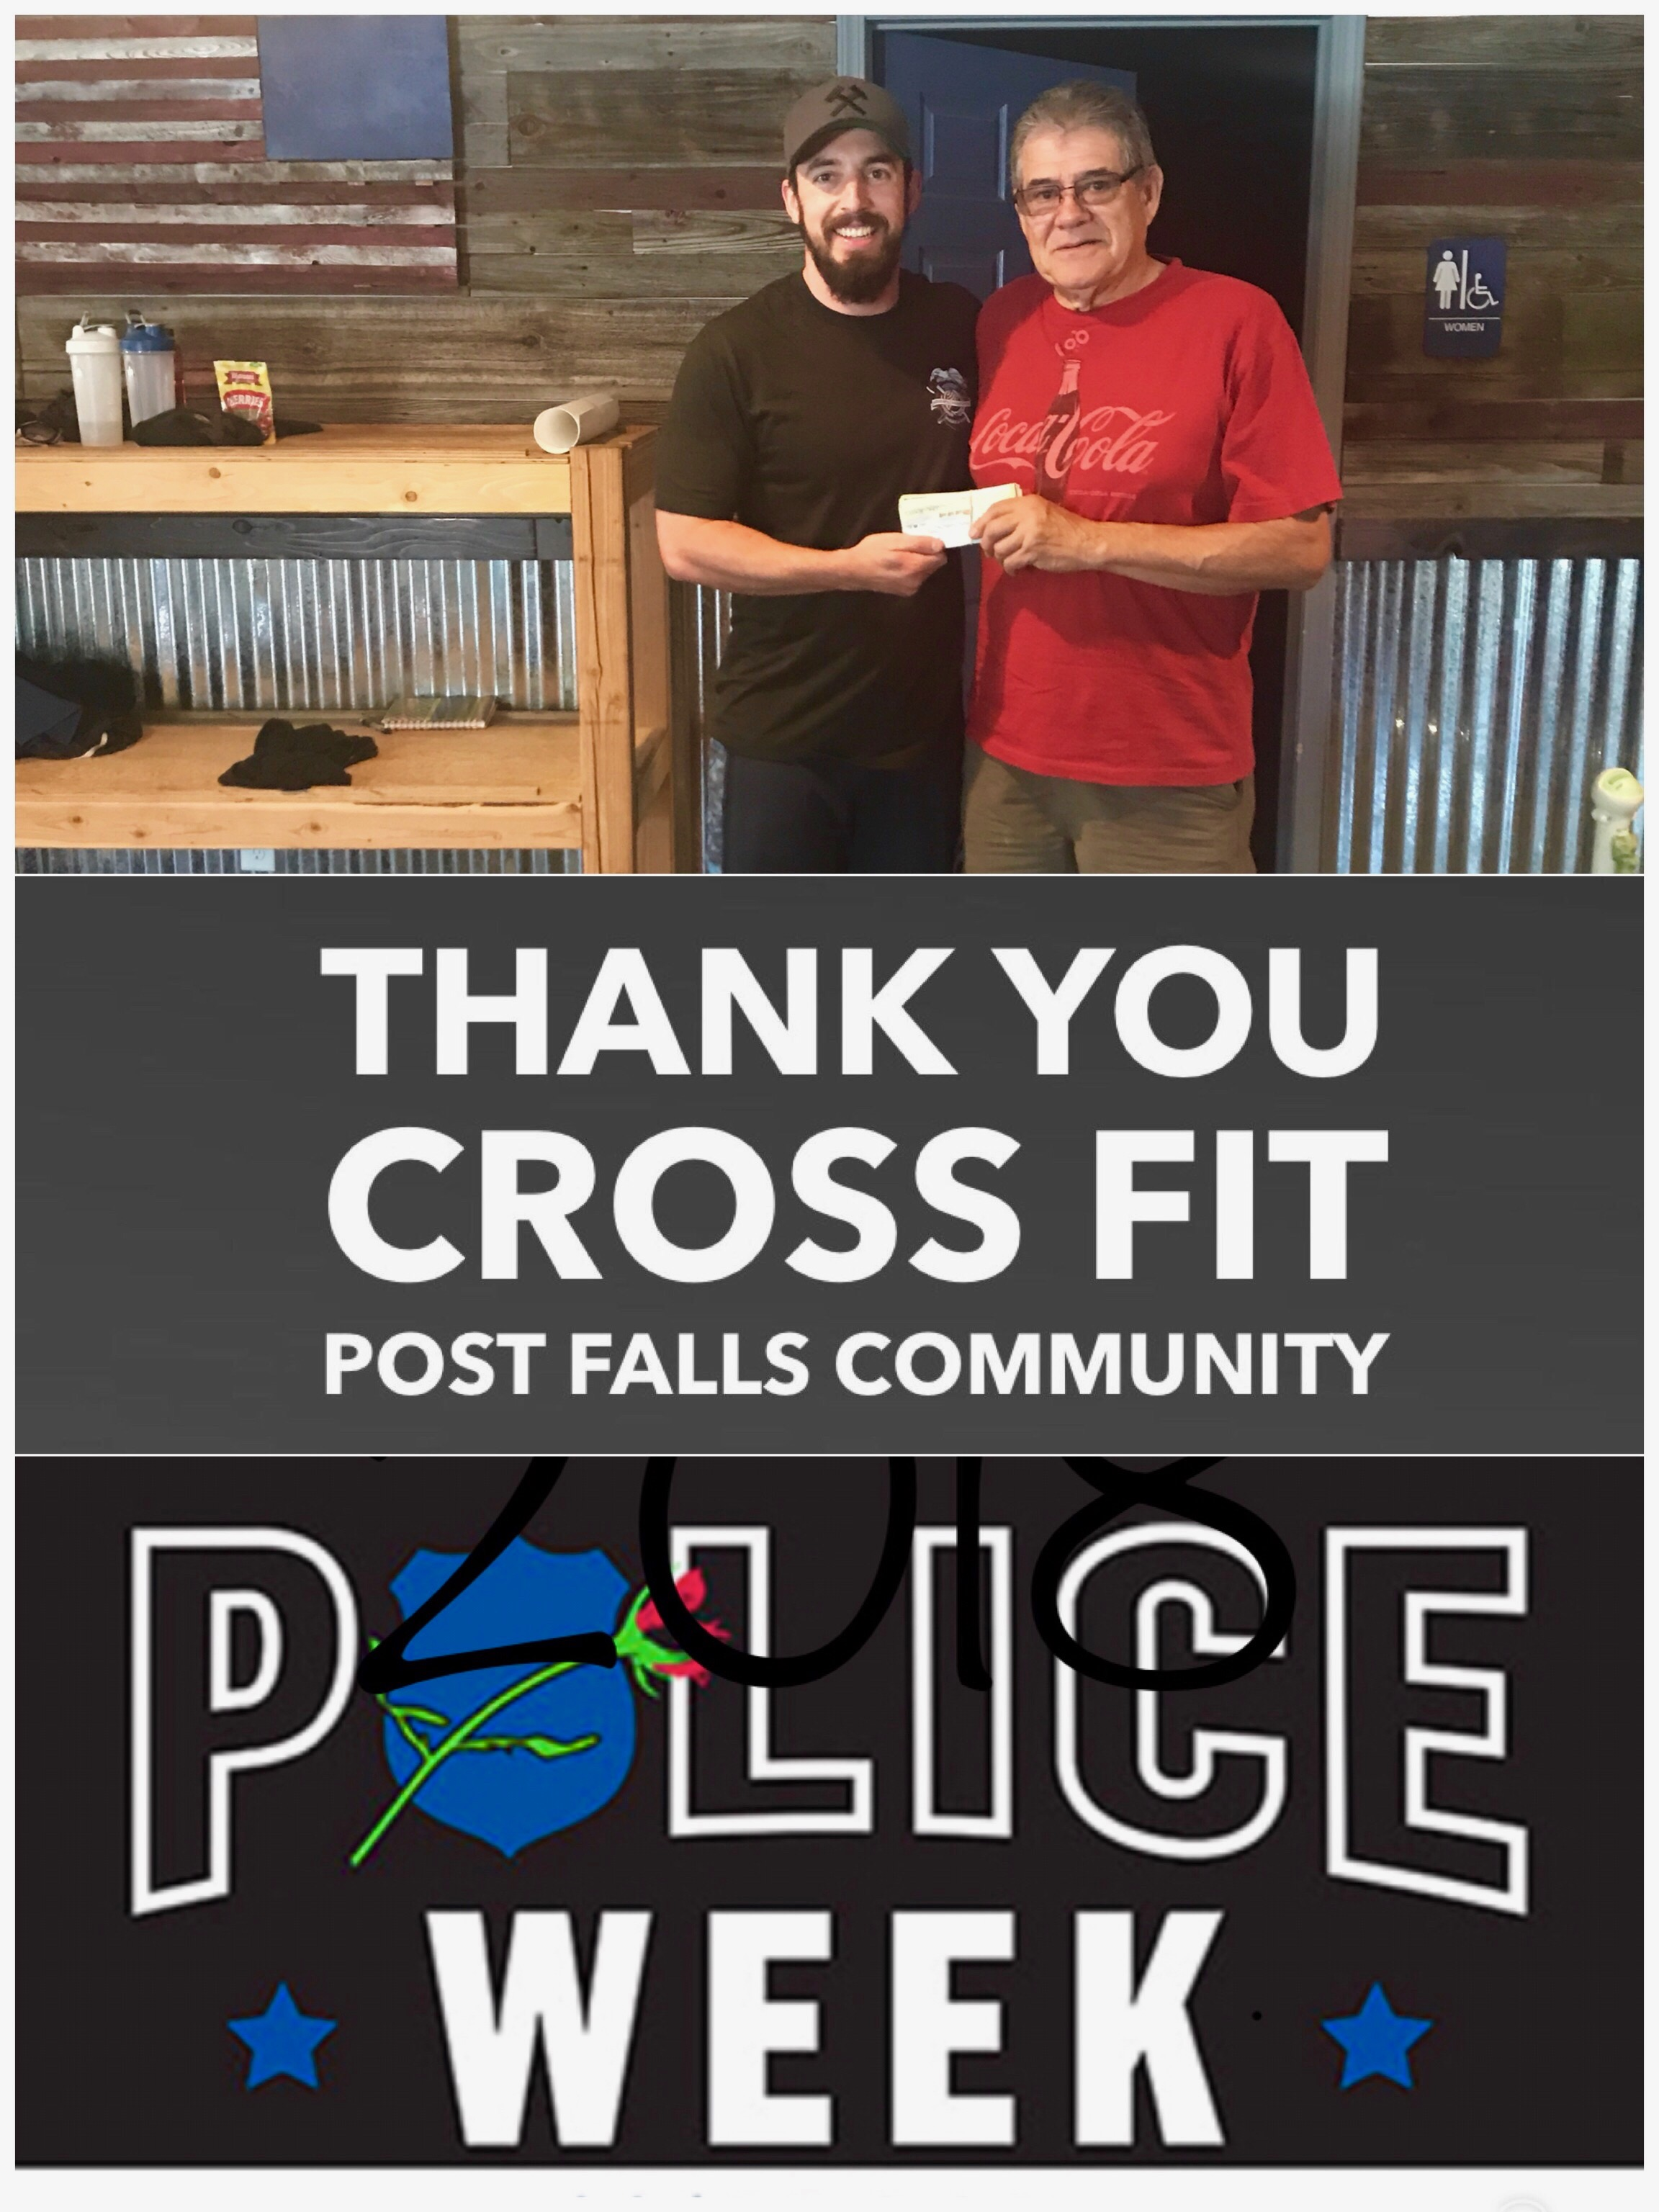 Cross Fit Thank You : Memorial Foundation